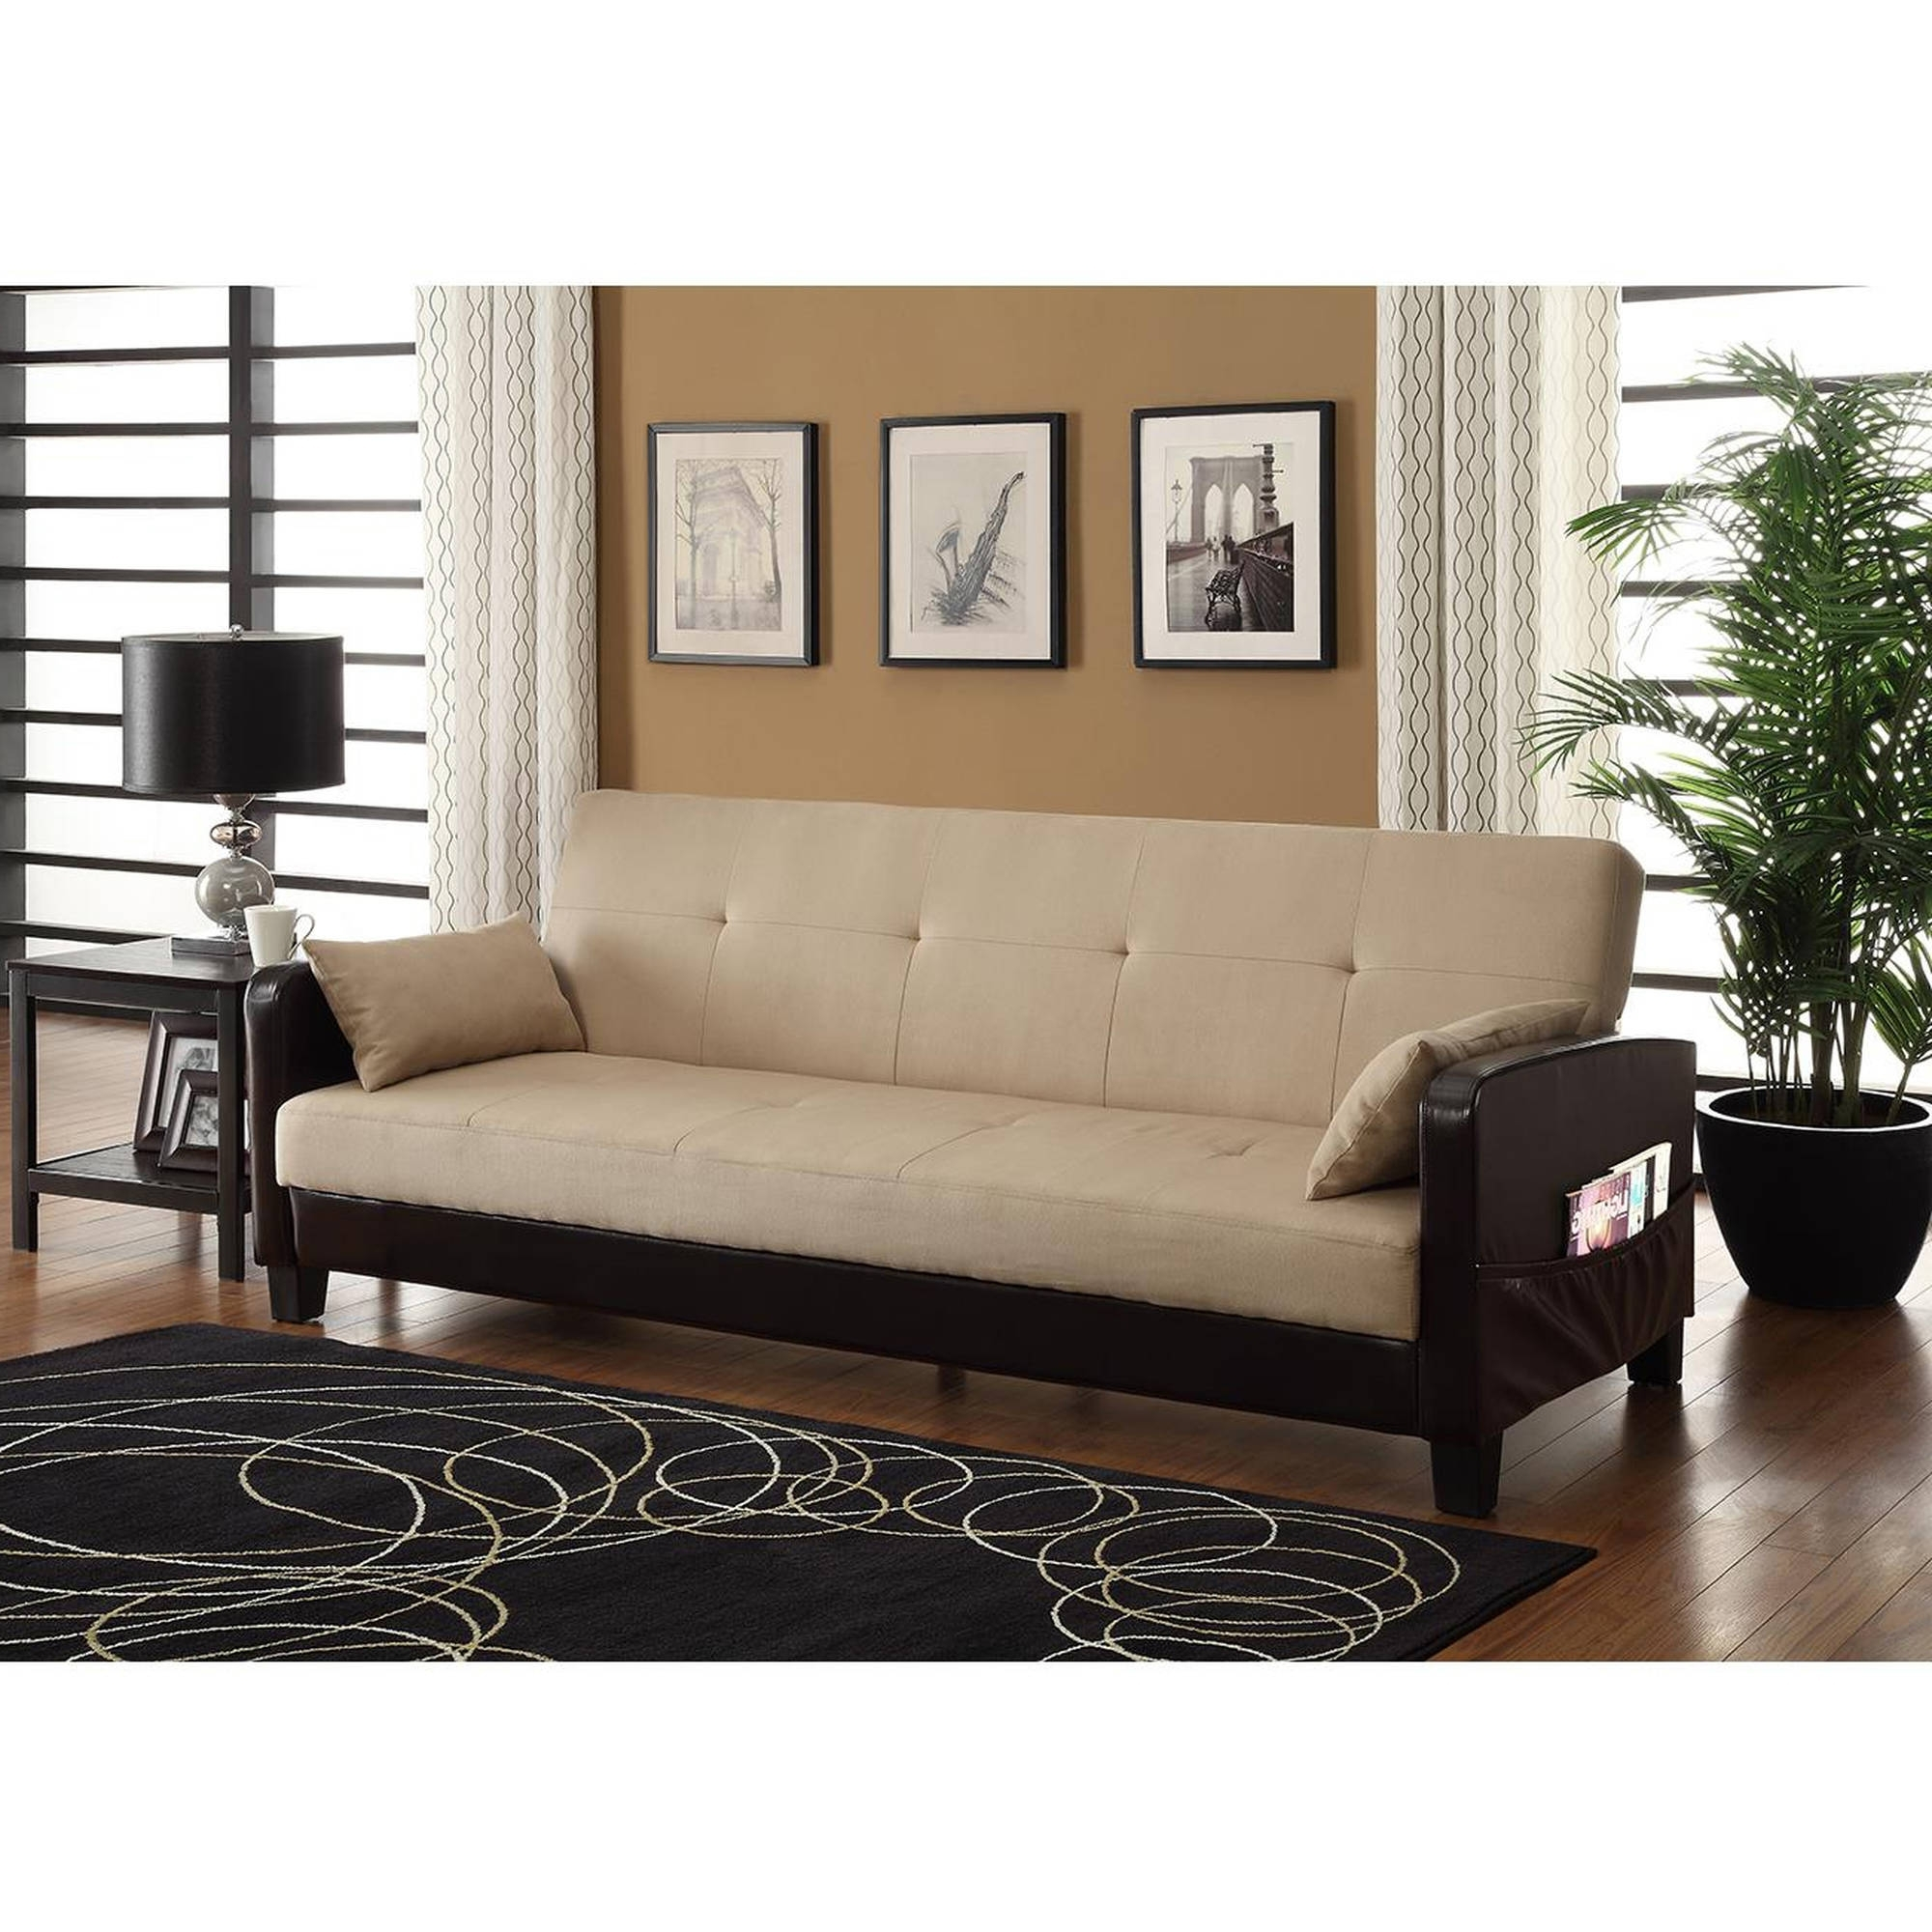 Most Popular Pittsburgh Sectional Sofas With Regard To Sofa Sleepers Under $ (View 19 of 20)